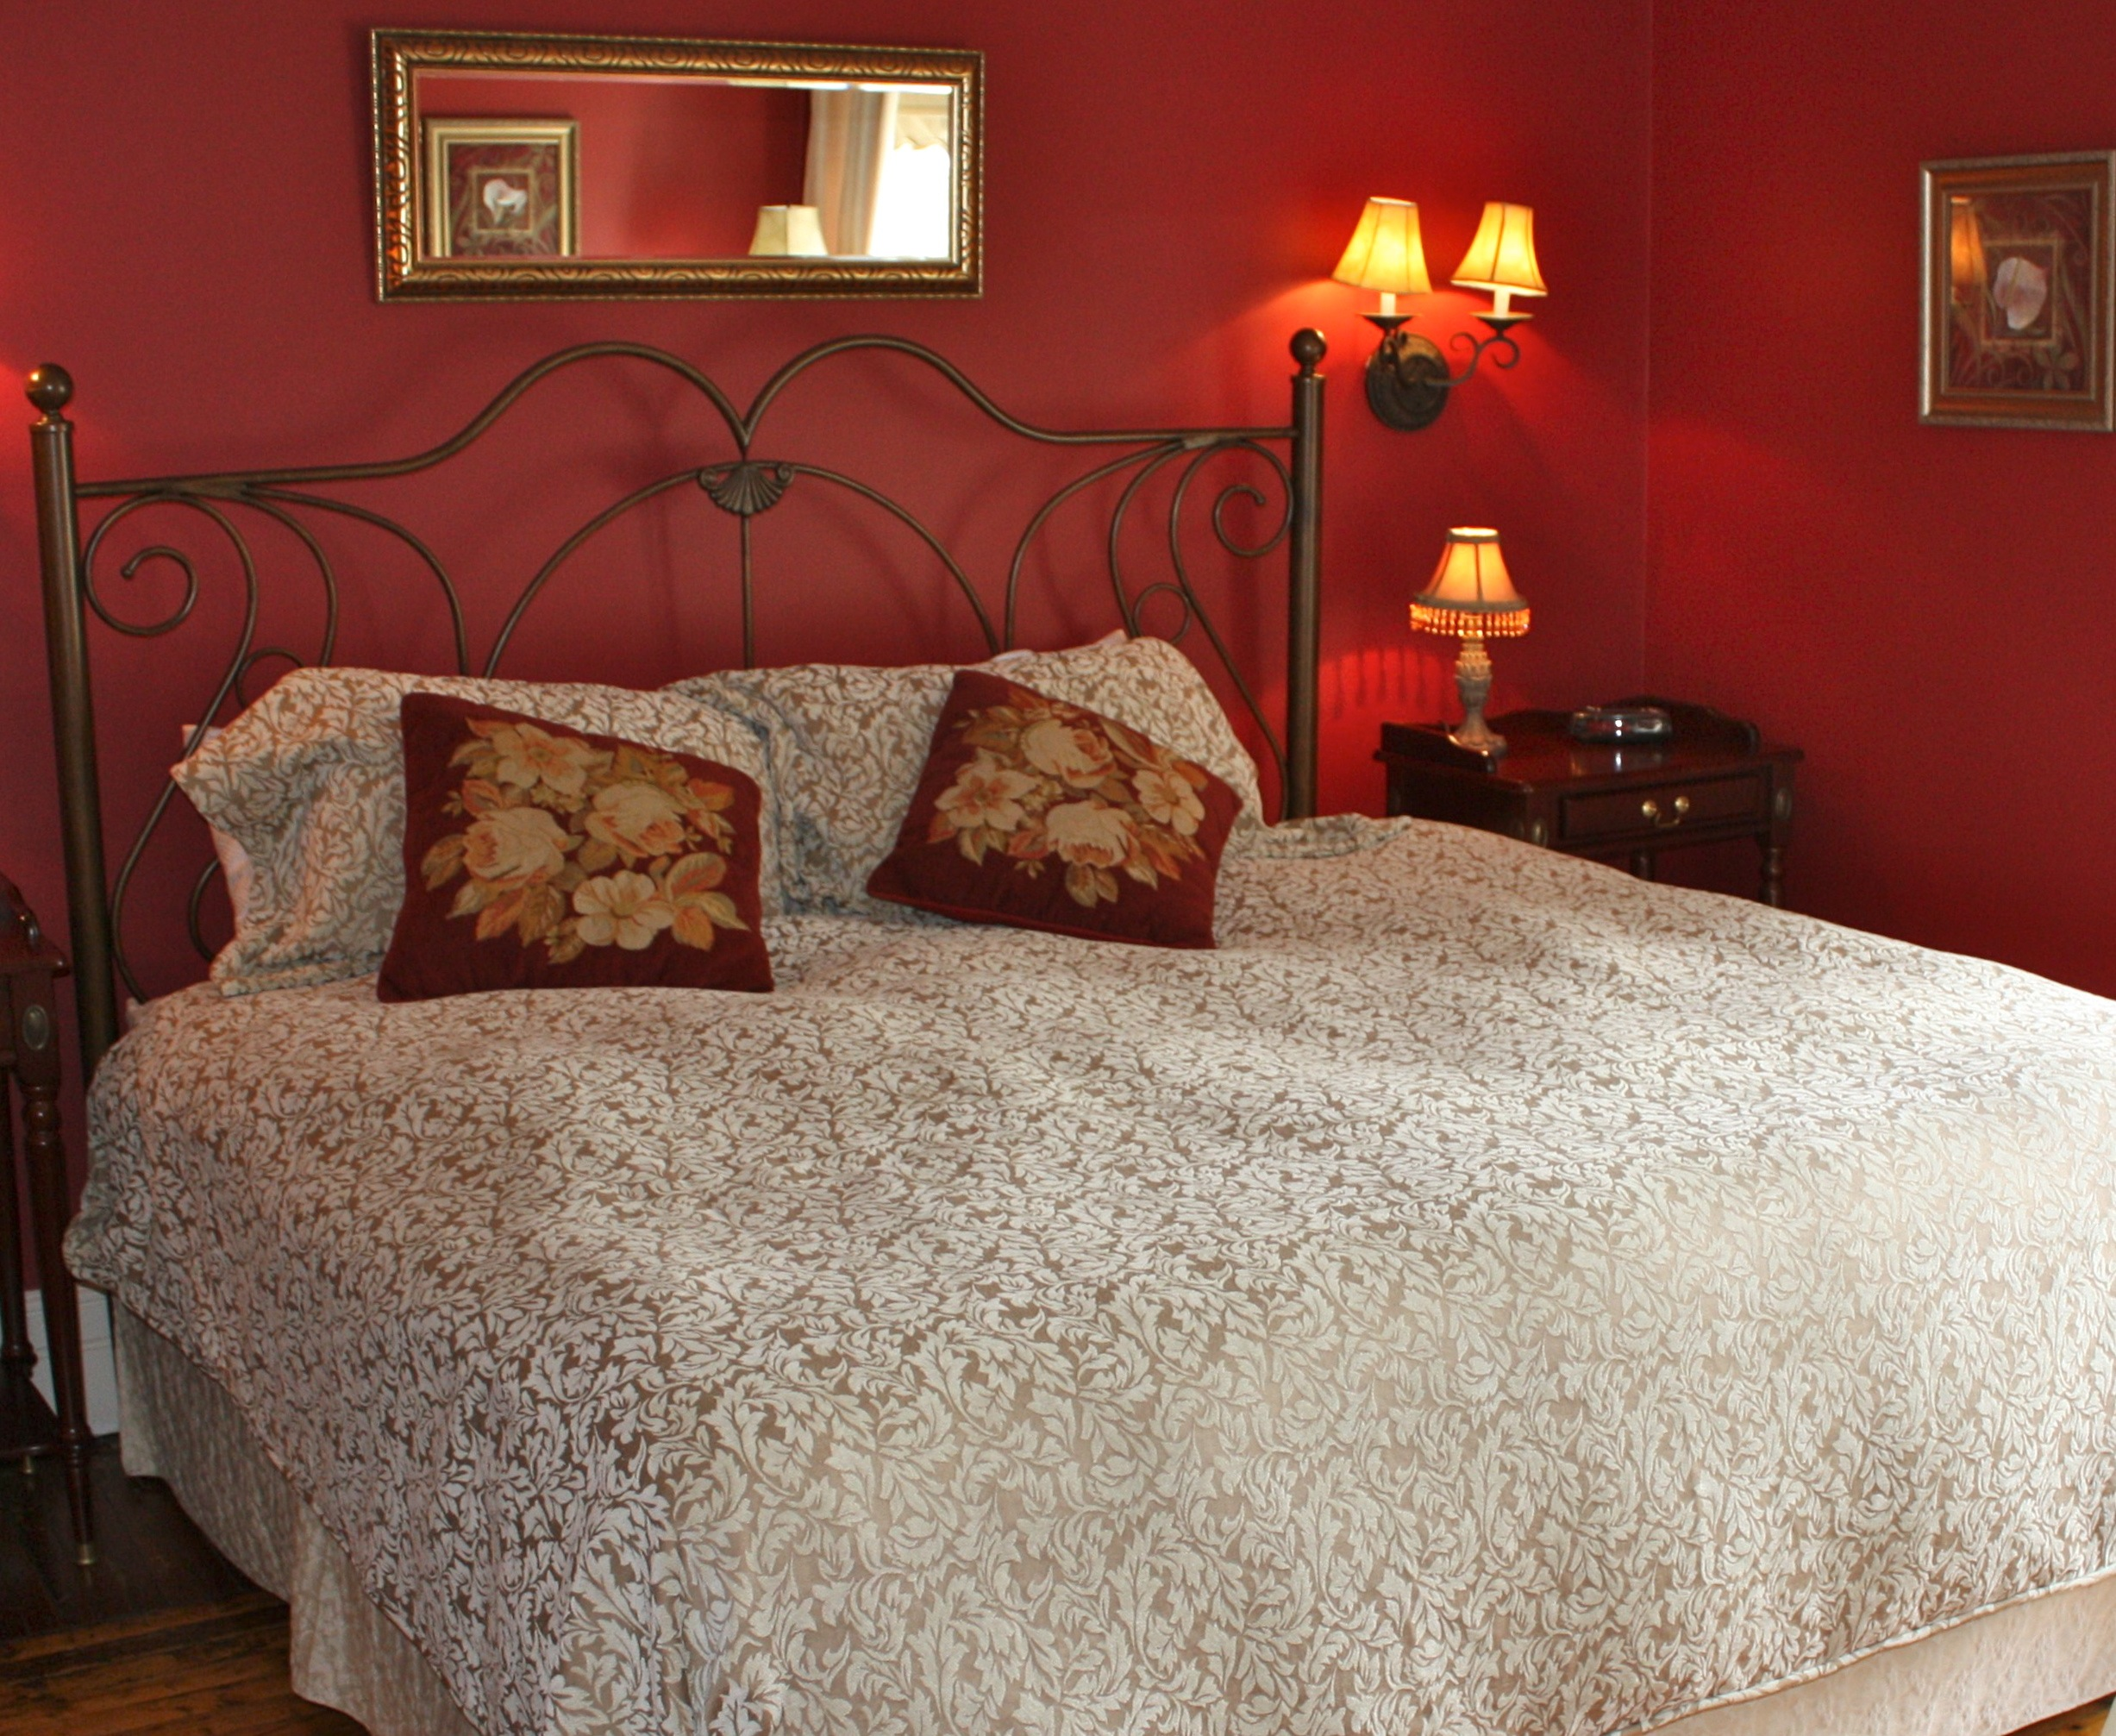 Quality Queen Sleep Sets For A Relaxing Night ...